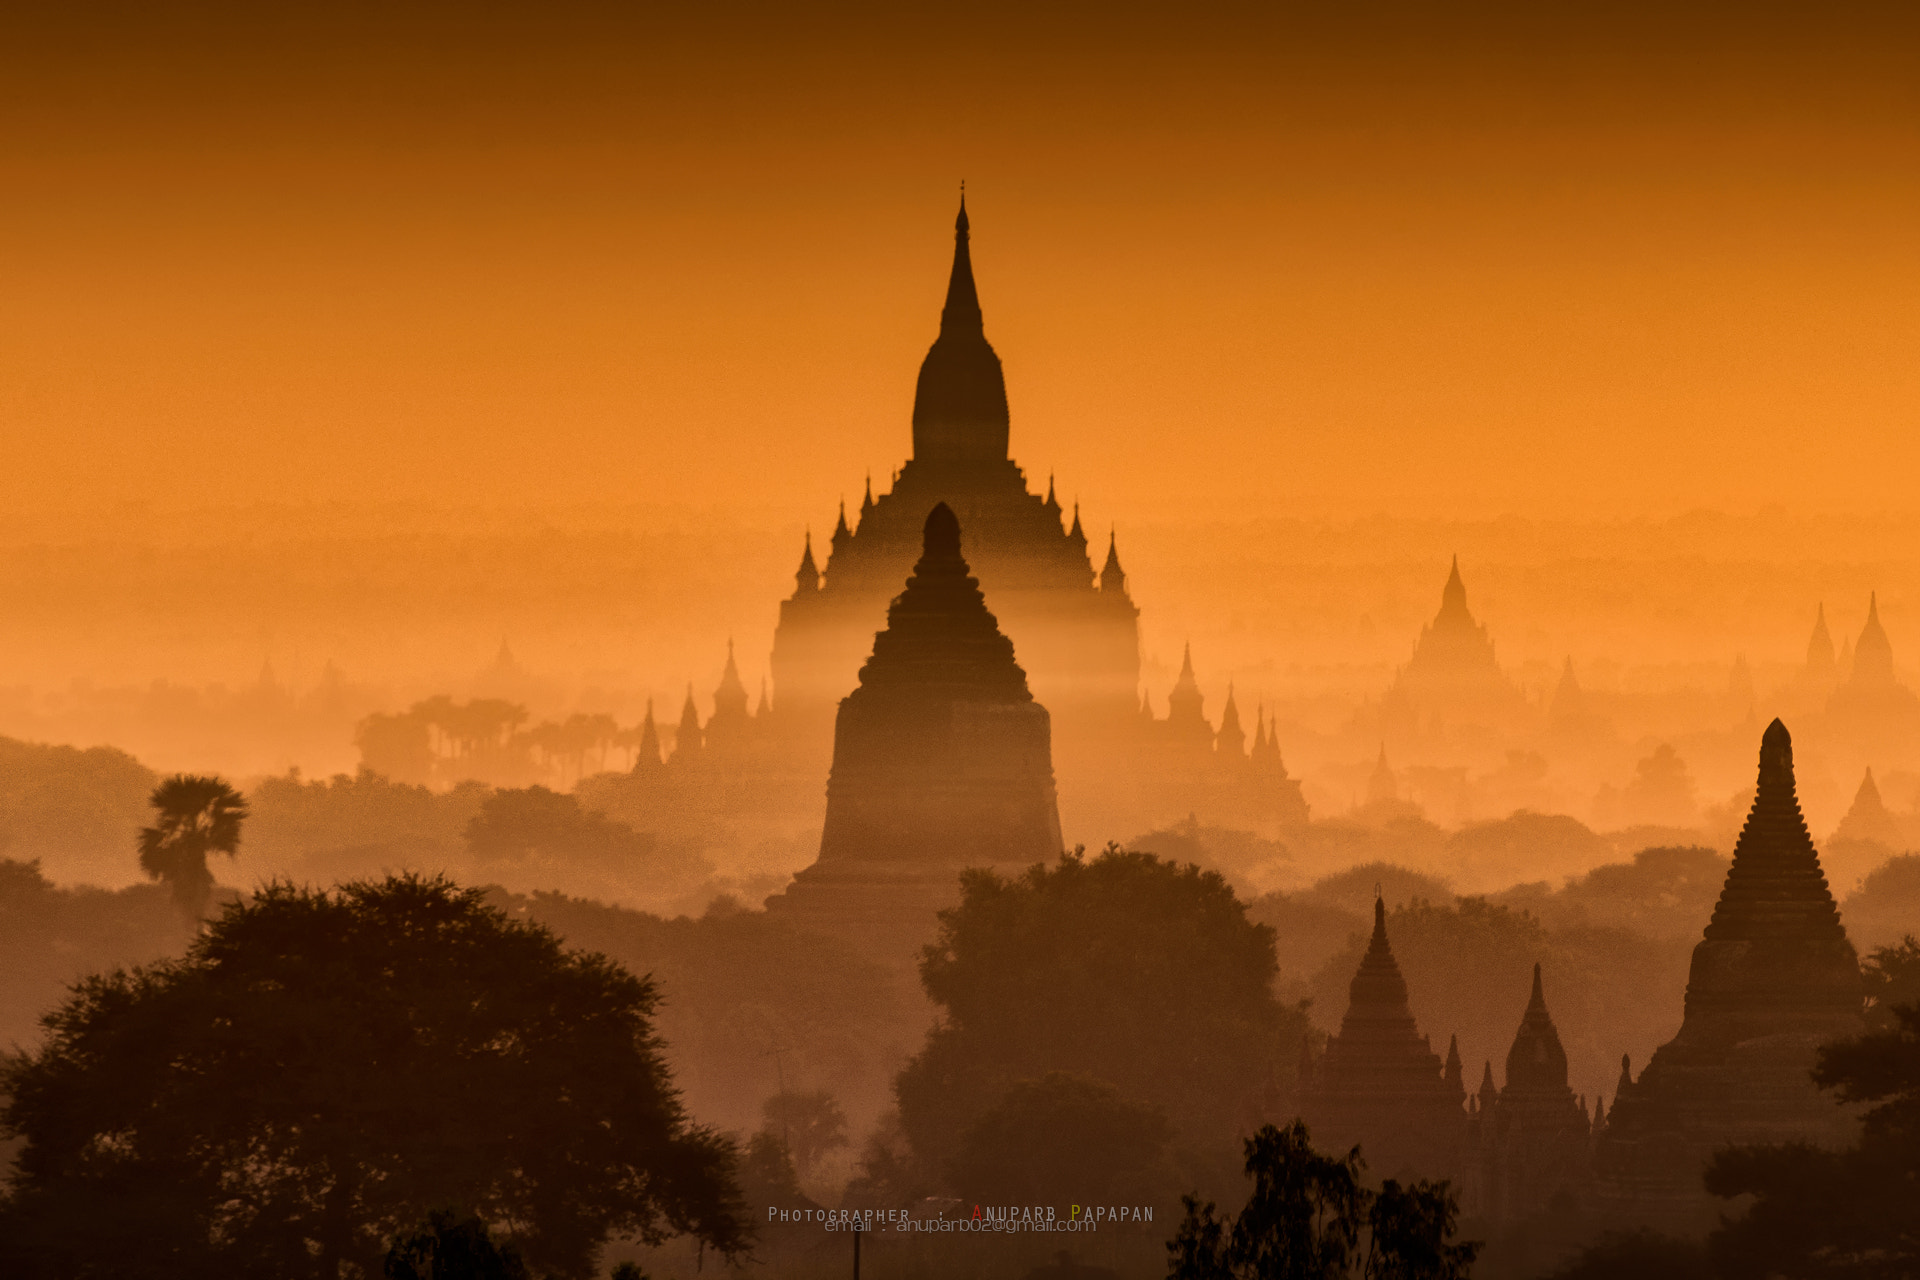 Photograph Light on Bagan by Anuparb Papapan on 500px